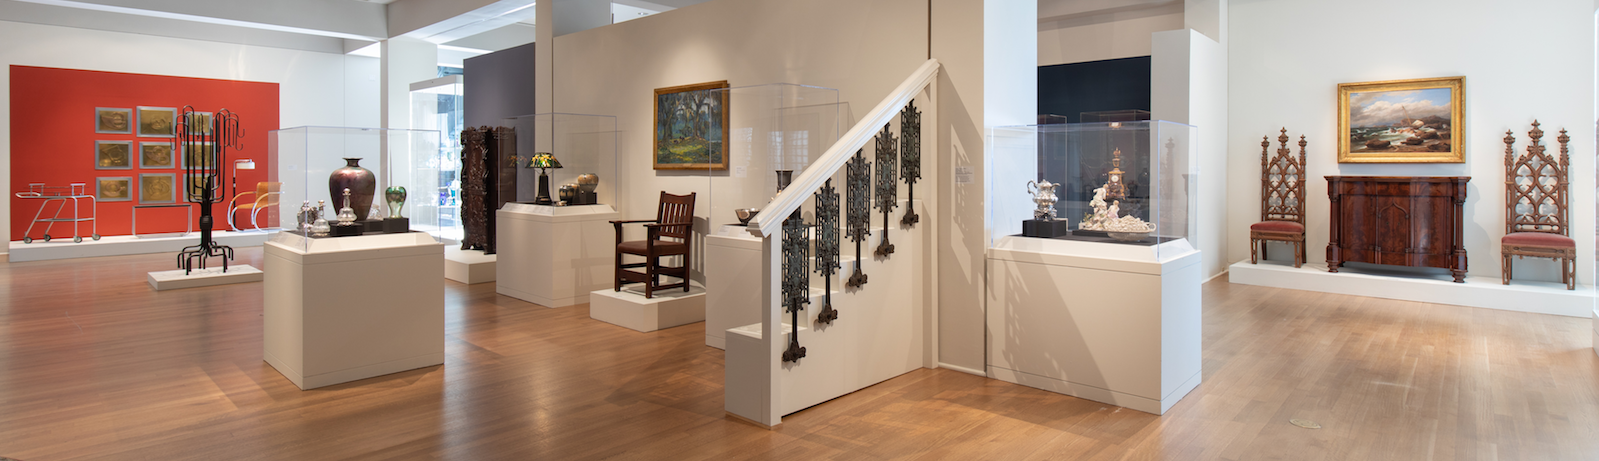 The newly reimagined decorative arts galleries now include works from the 20th and 21st centuries.